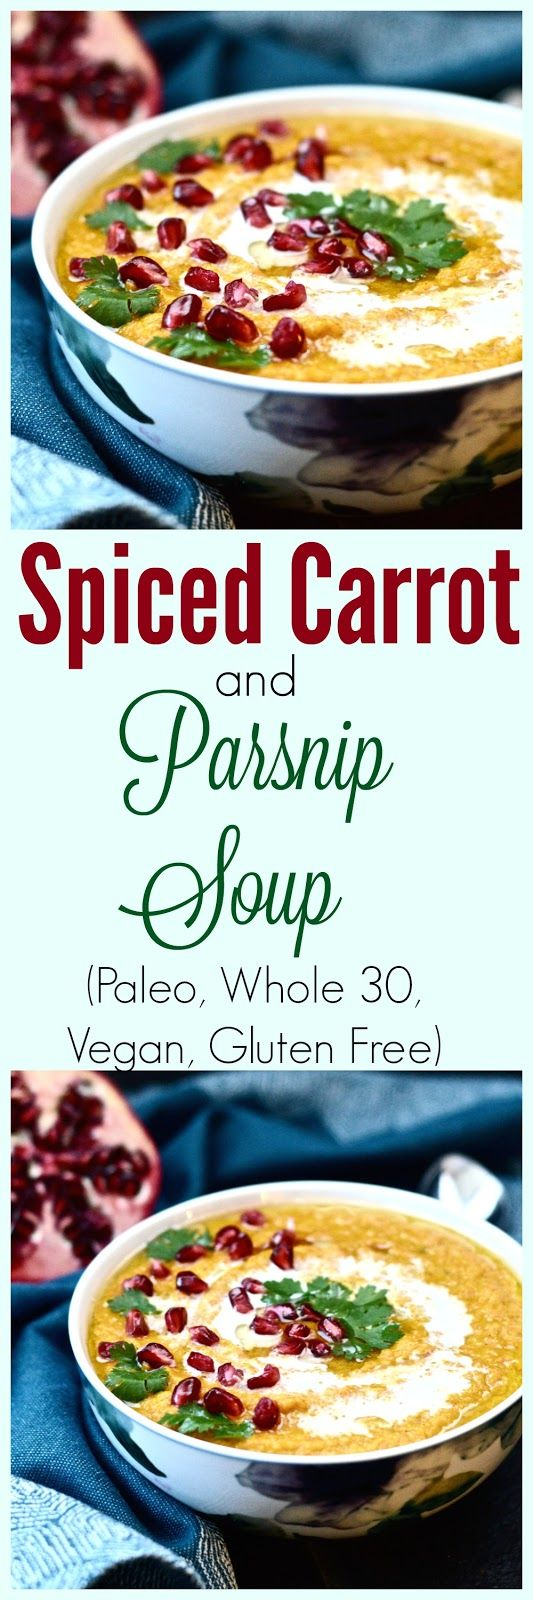 Spiced Carrot and Parsnip Soup (Paleo, Whole 30, Vegan, Vegetables) I would use mace instead of nutmeg